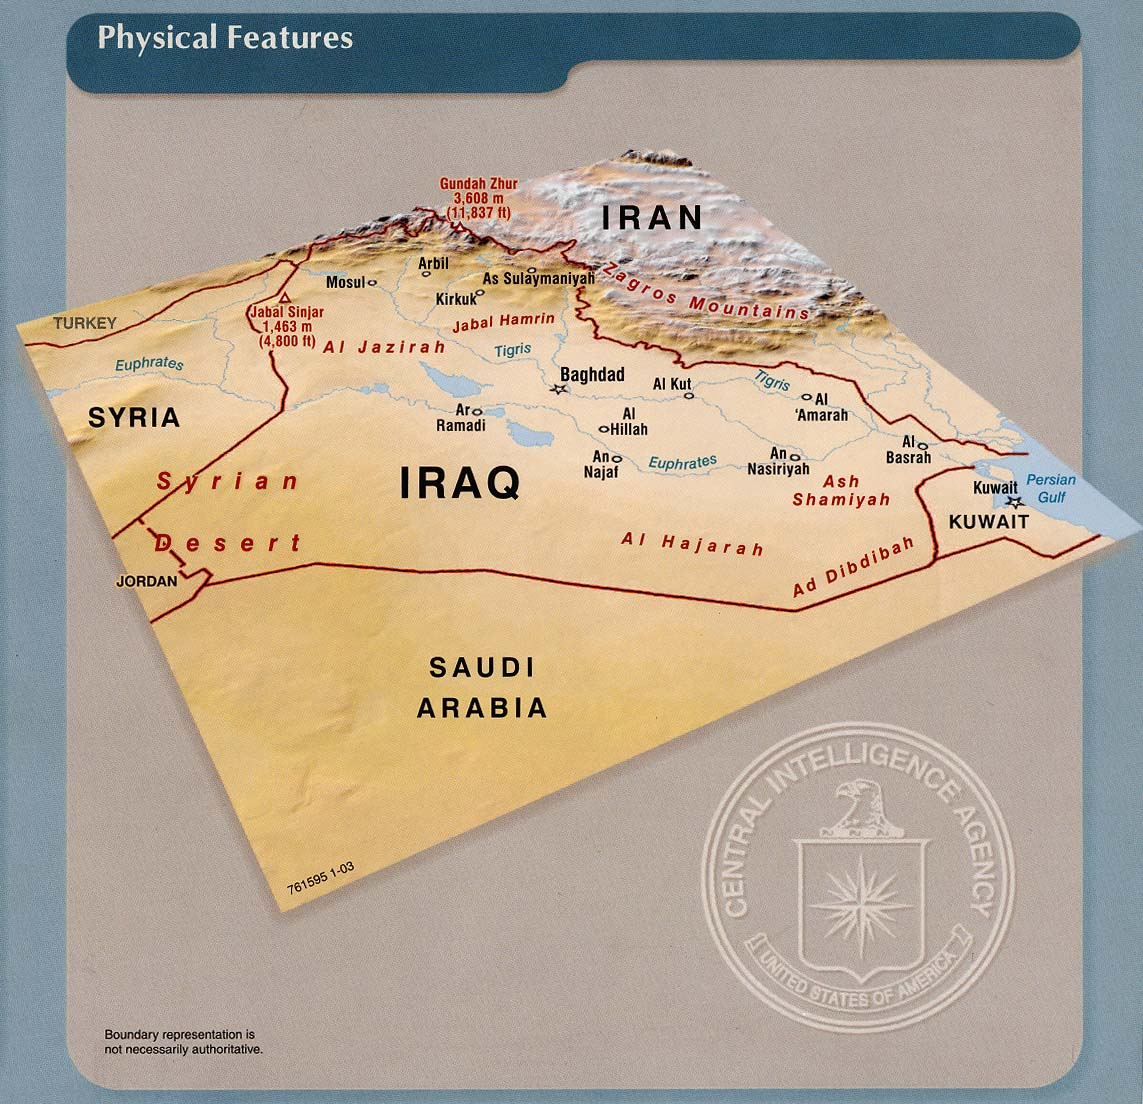 Iraq Physical Features 2003 - Full size